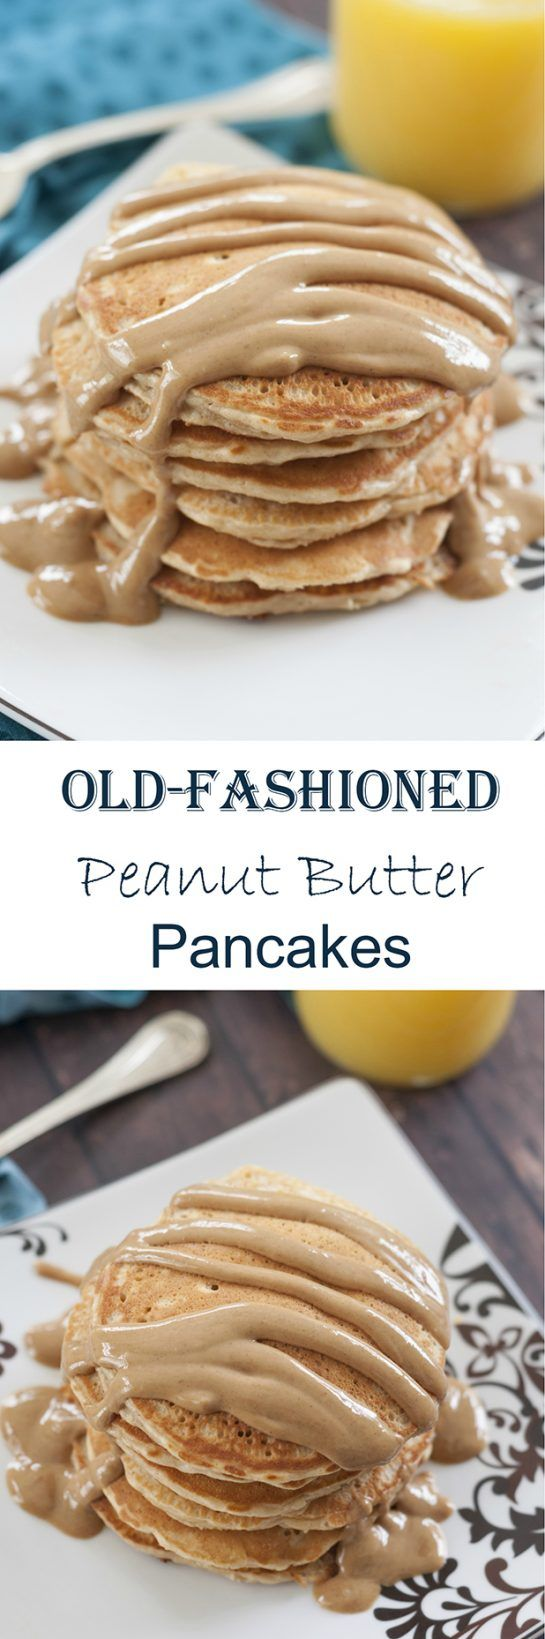 Old-Fashioned Peanut Butter Pancake